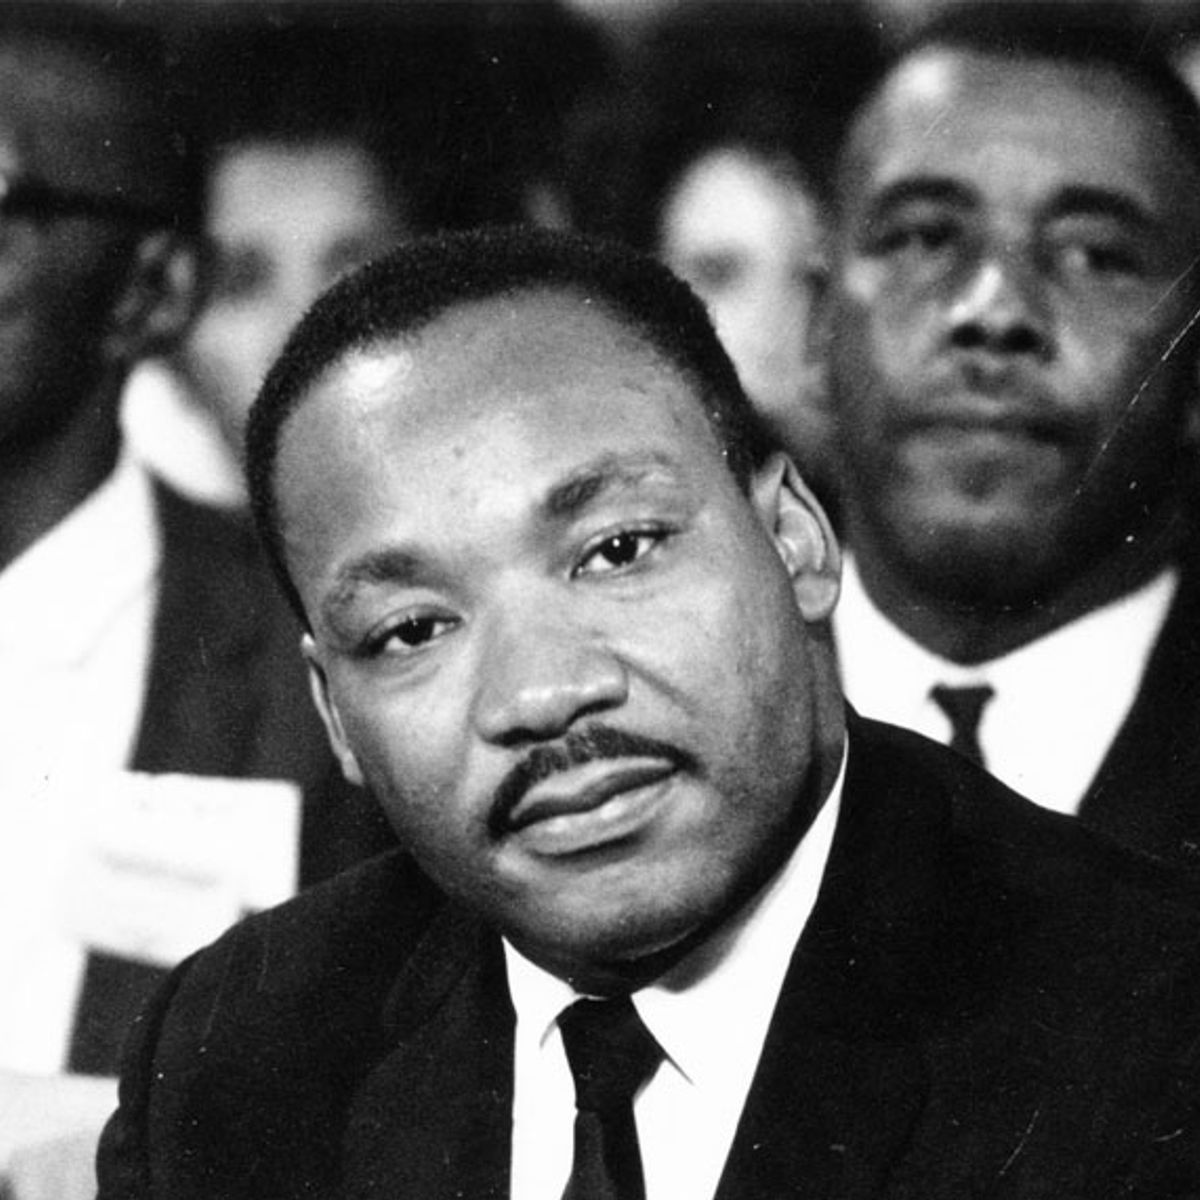 Myths about Martin Luther King Jr. damage and diminish his legacy